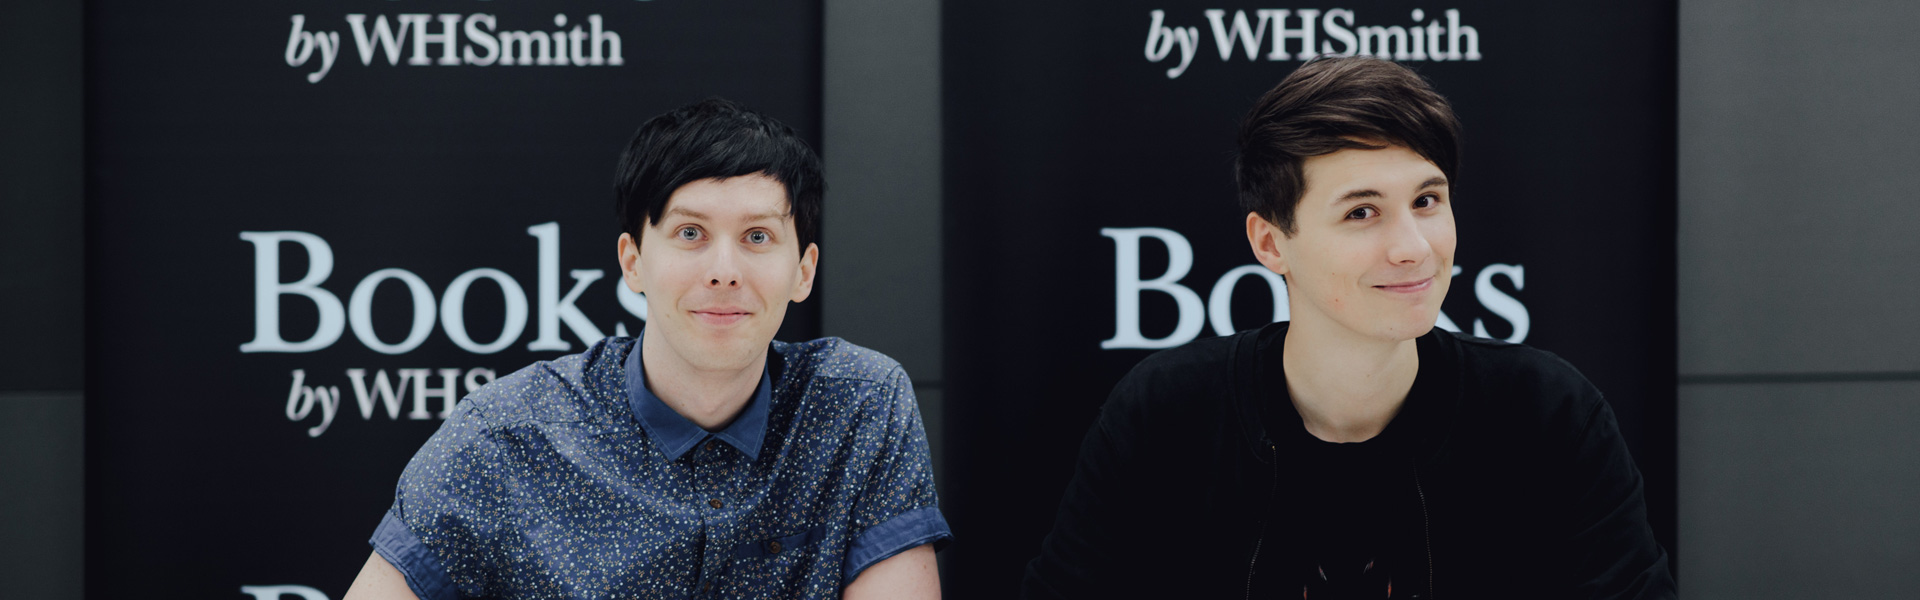 Dan And Phil Bristol Signing Event Whsmith Blog